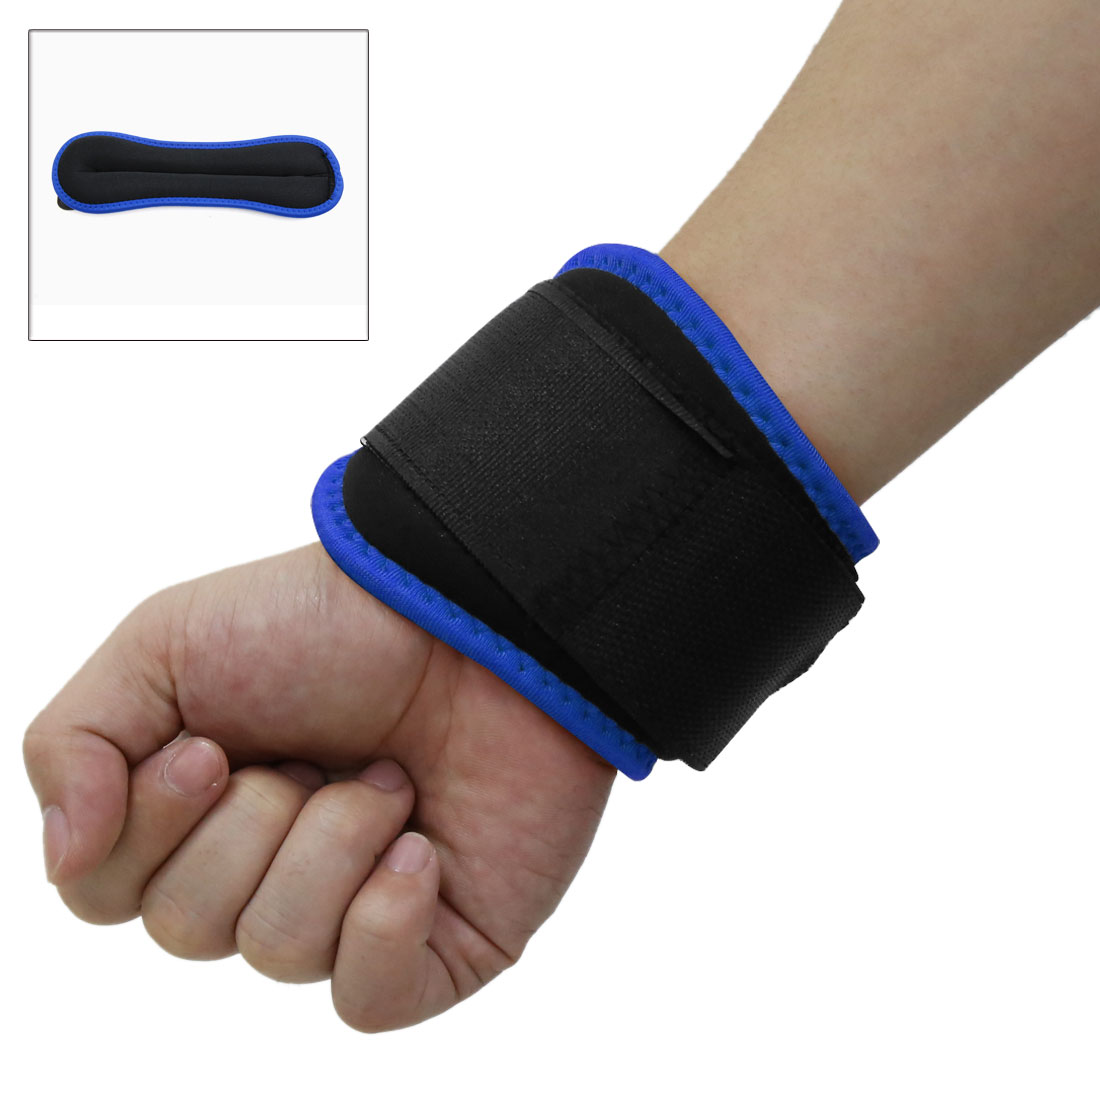 Blue Black Adjustable Hook Loop Closure Wrist Weight Band Wrap Workout Exercise Training Tool